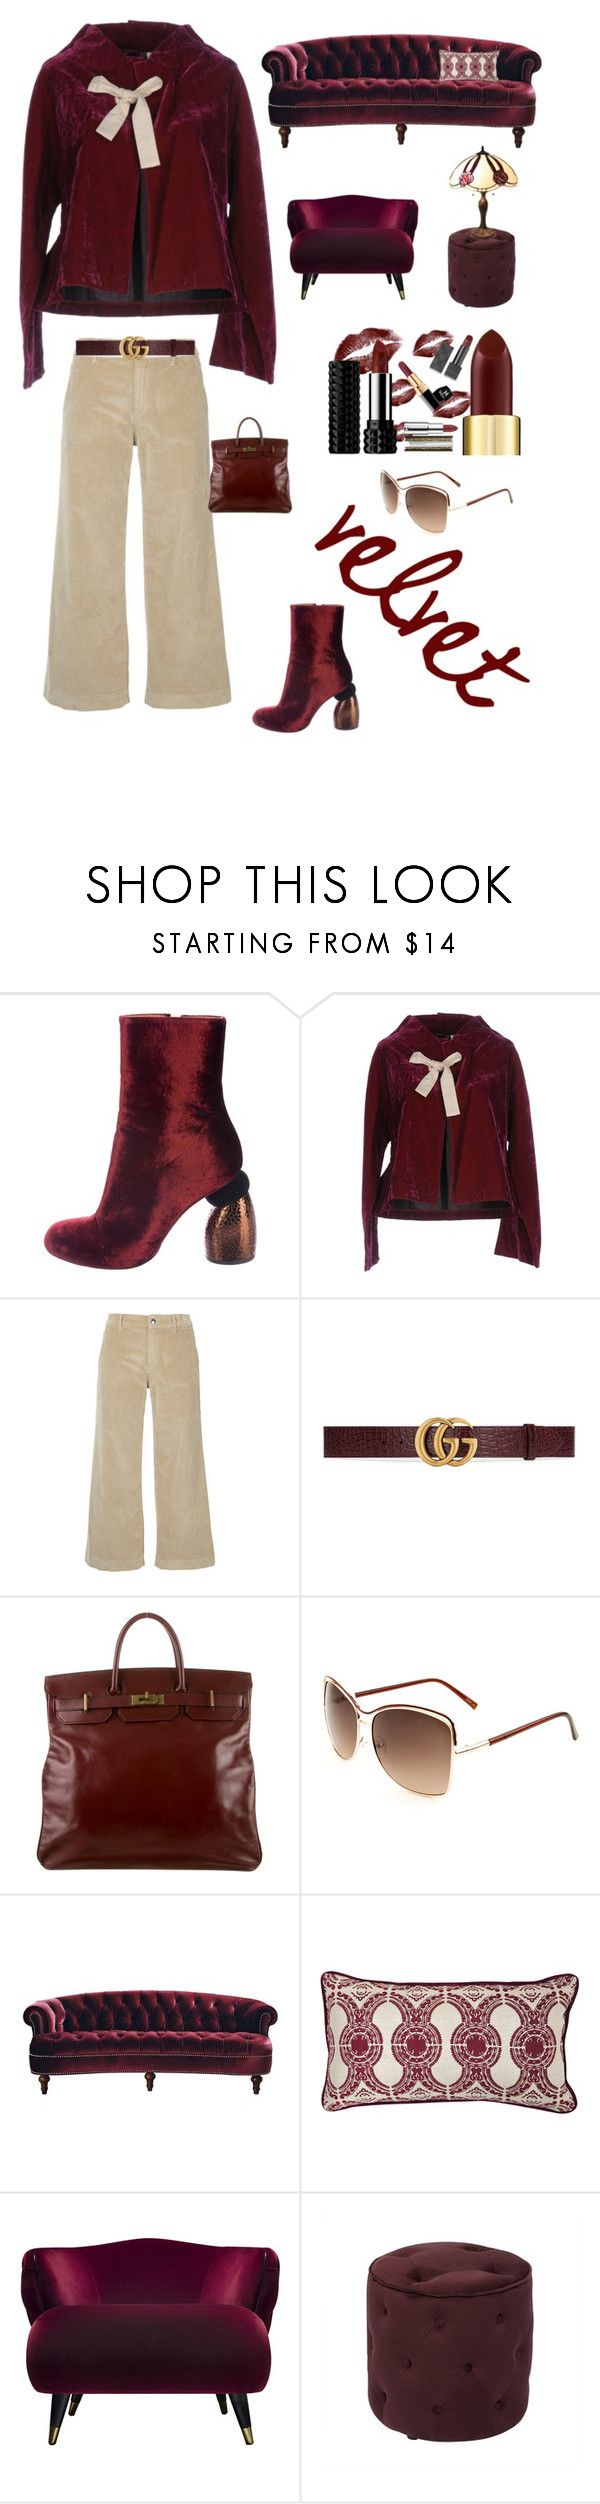 """""""Velvet trend"""" by kotnourka ❤ liked on Polyvore featuring Dries Van Noten, Comme des Garçons, The Seafarer, Gucci, Hermès, Jennifer Taylor, Villa Home Collection, AveSix and Serena d'Italia"""